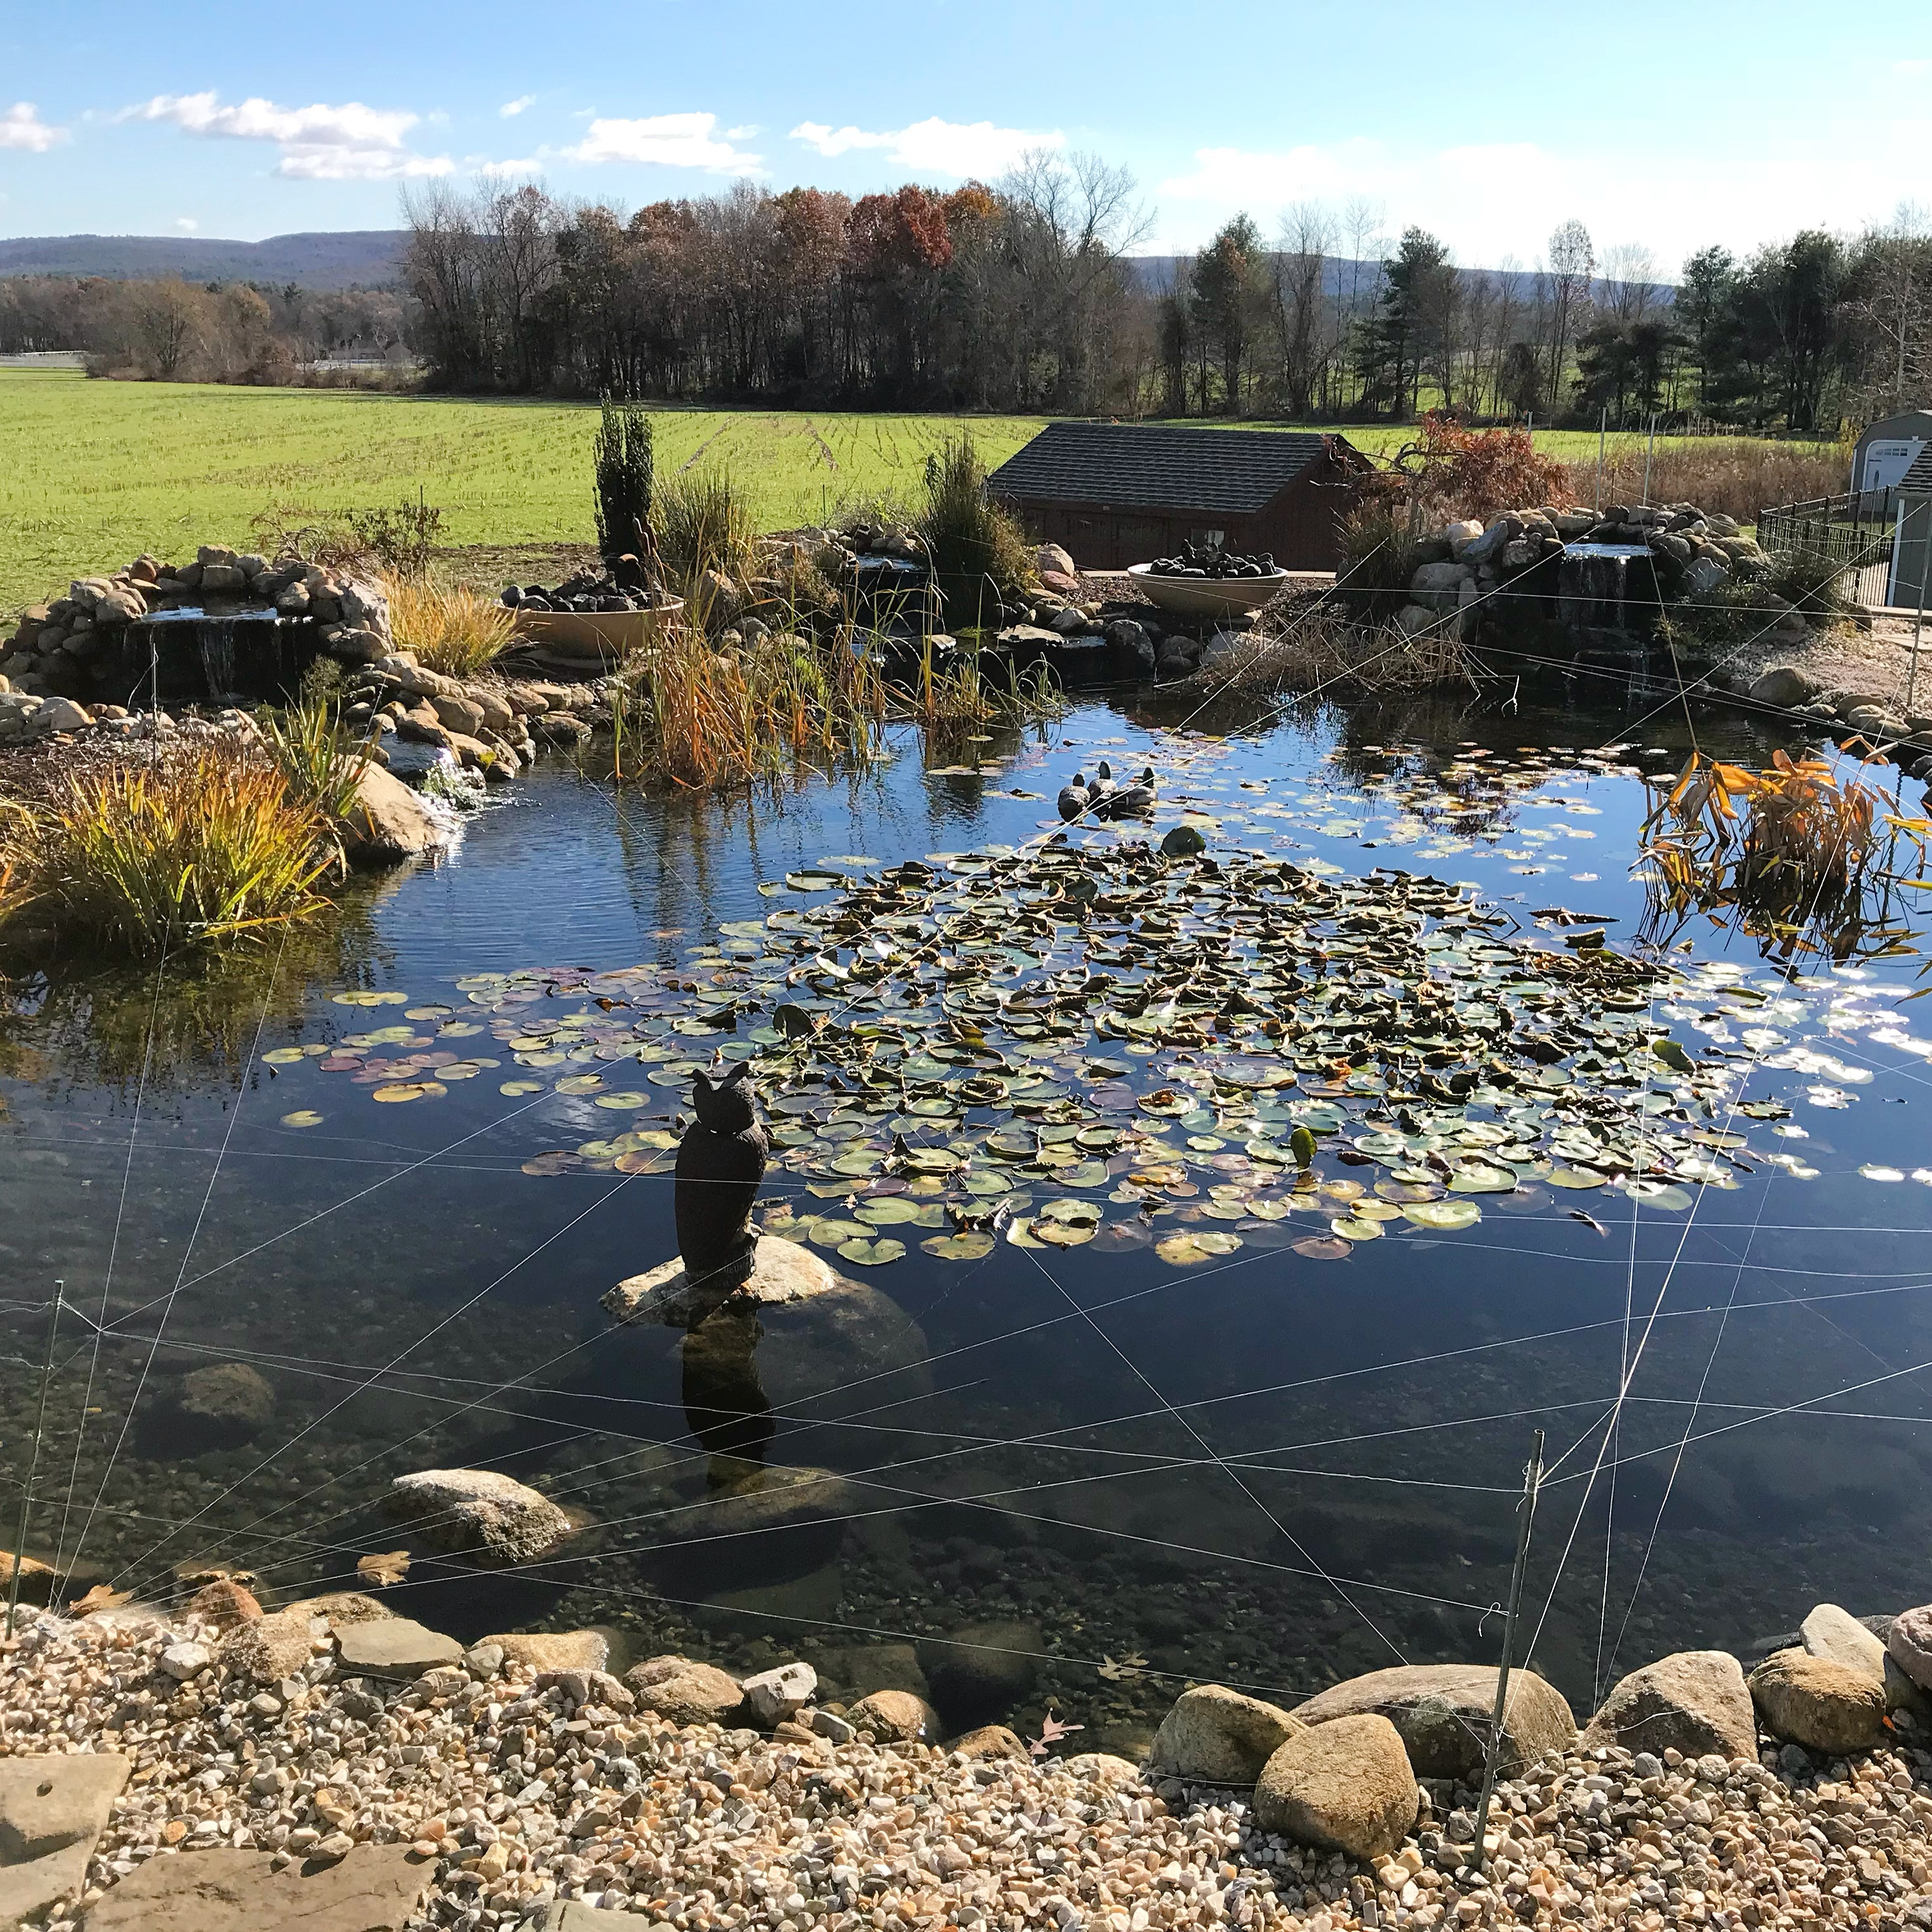 Pond in Somers, CT